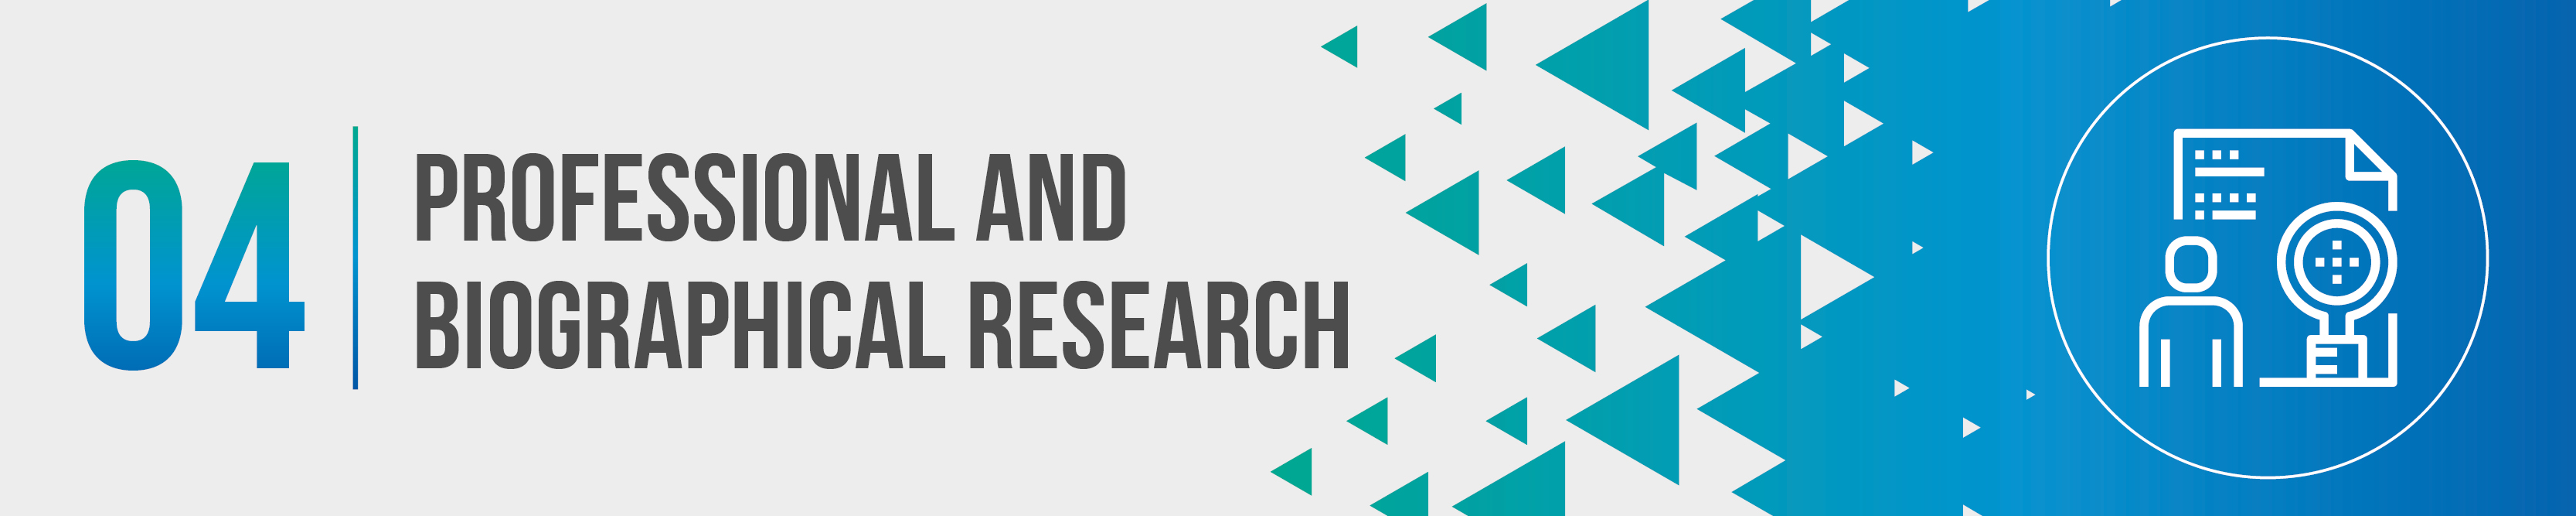 Professional and Biographical Research